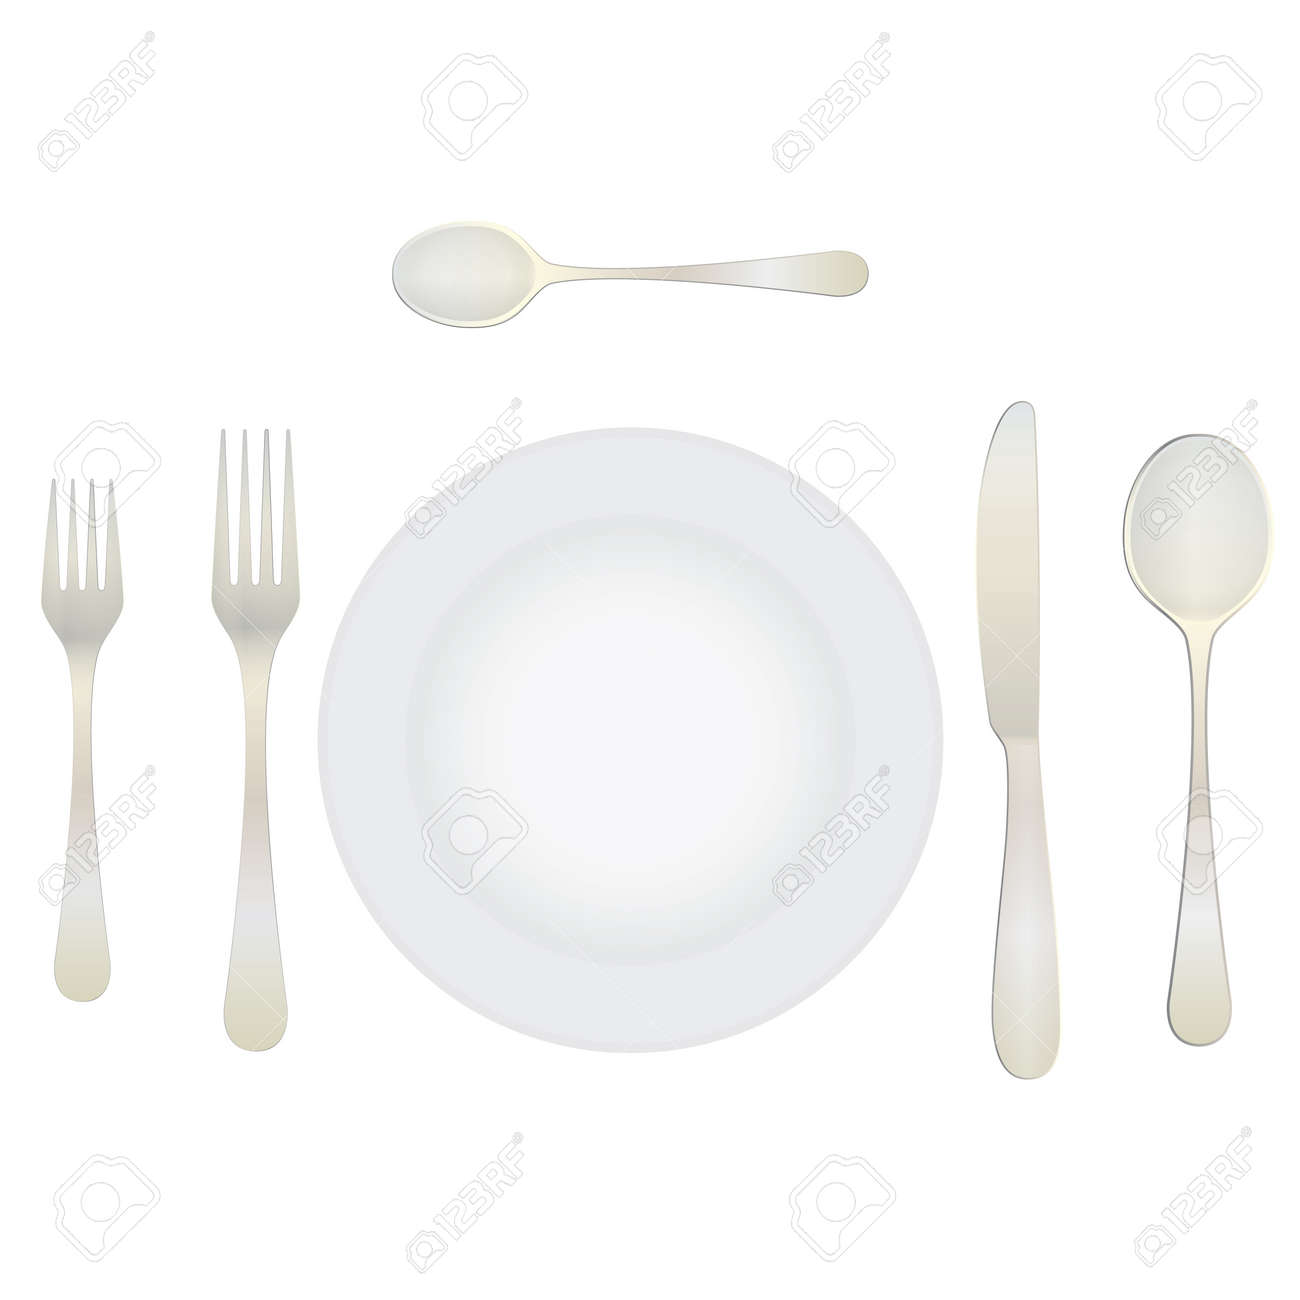 Cutlery and crockery on the table. Table setting. Etiquette. Top view. Elements  sc 1 st  123RF.com & Cutlery And Crockery On The Table. Table Setting. Etiquette ...